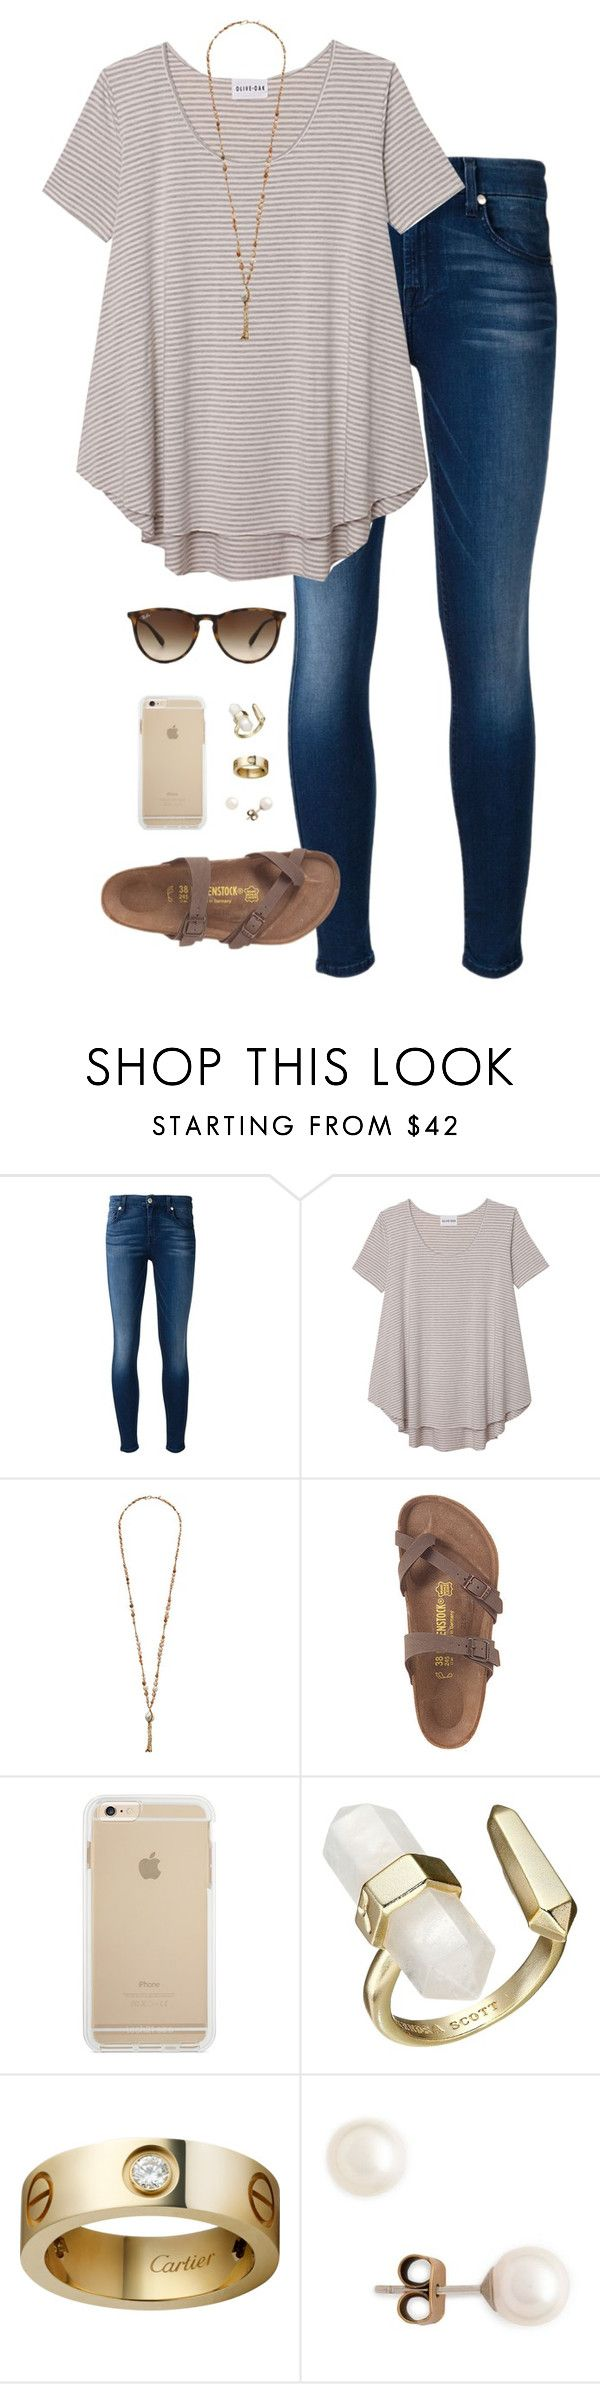 """""""this makes me so so happy"""" by tessorastefan ❤ liked on Polyvore featuring 7 For All Mankind, Olive + Oak, Chan Luu, Kendra Scott, J.Crew and Ray-Ban"""